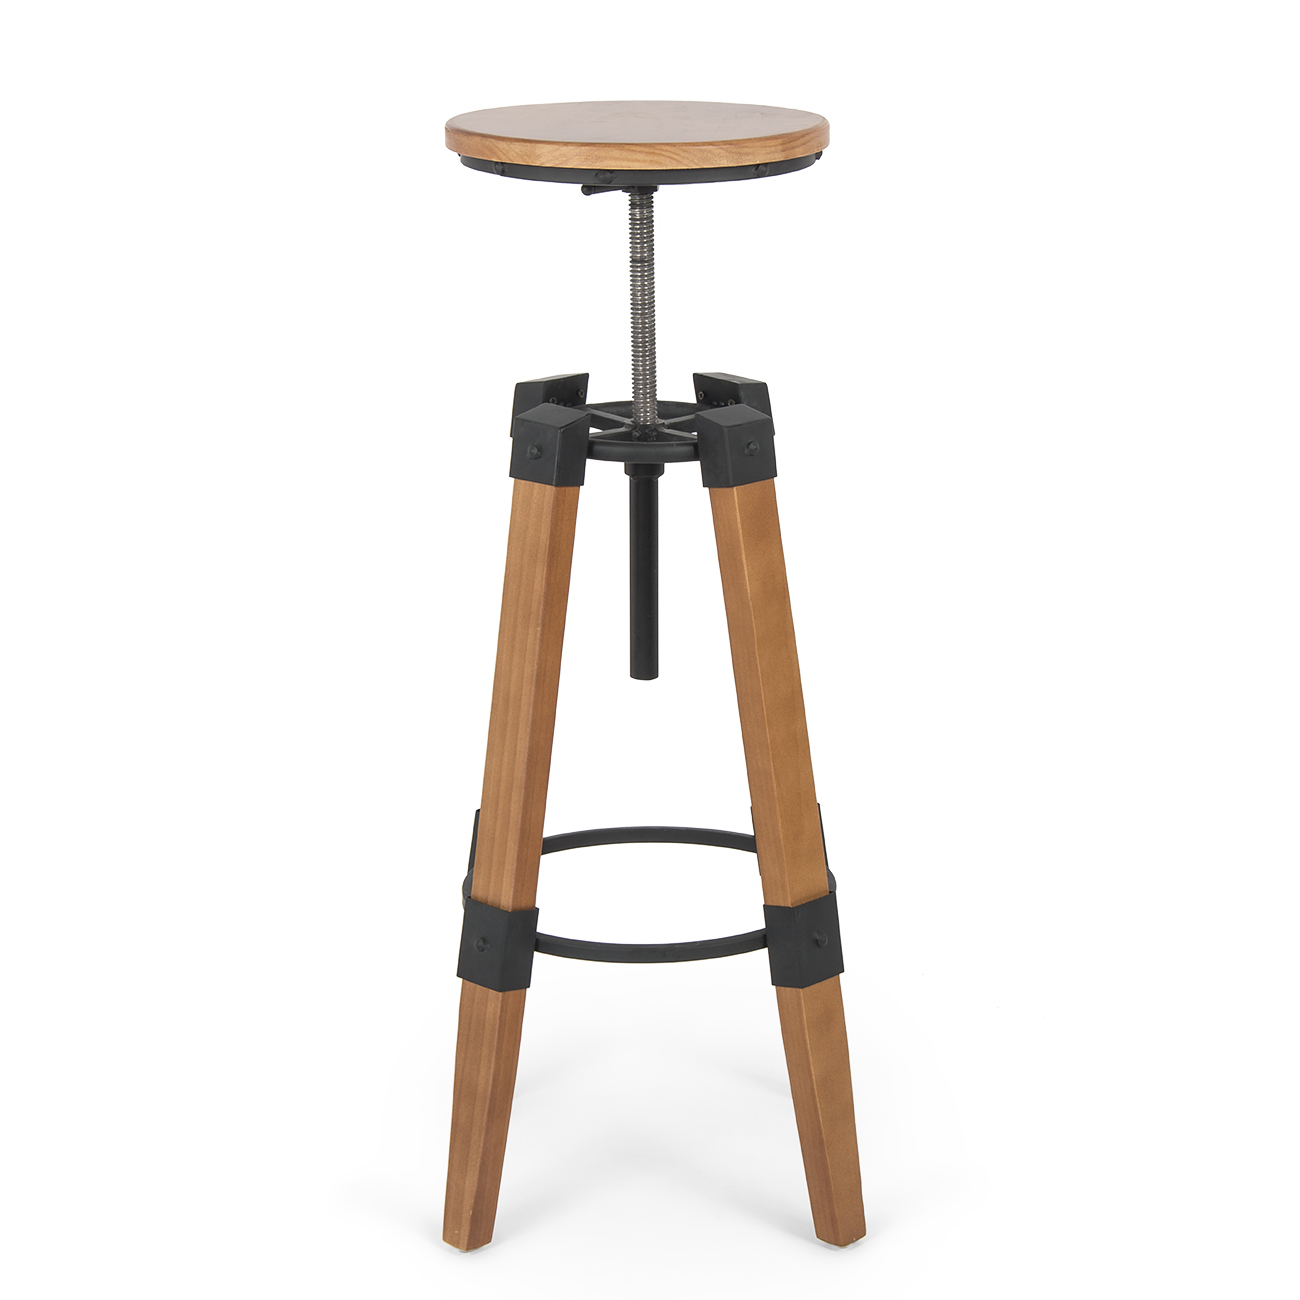 Industrial Wood Adjustable Seat Barstool High Chair: Industrial Bar Stools Swivel Wood Vintage Adjustable